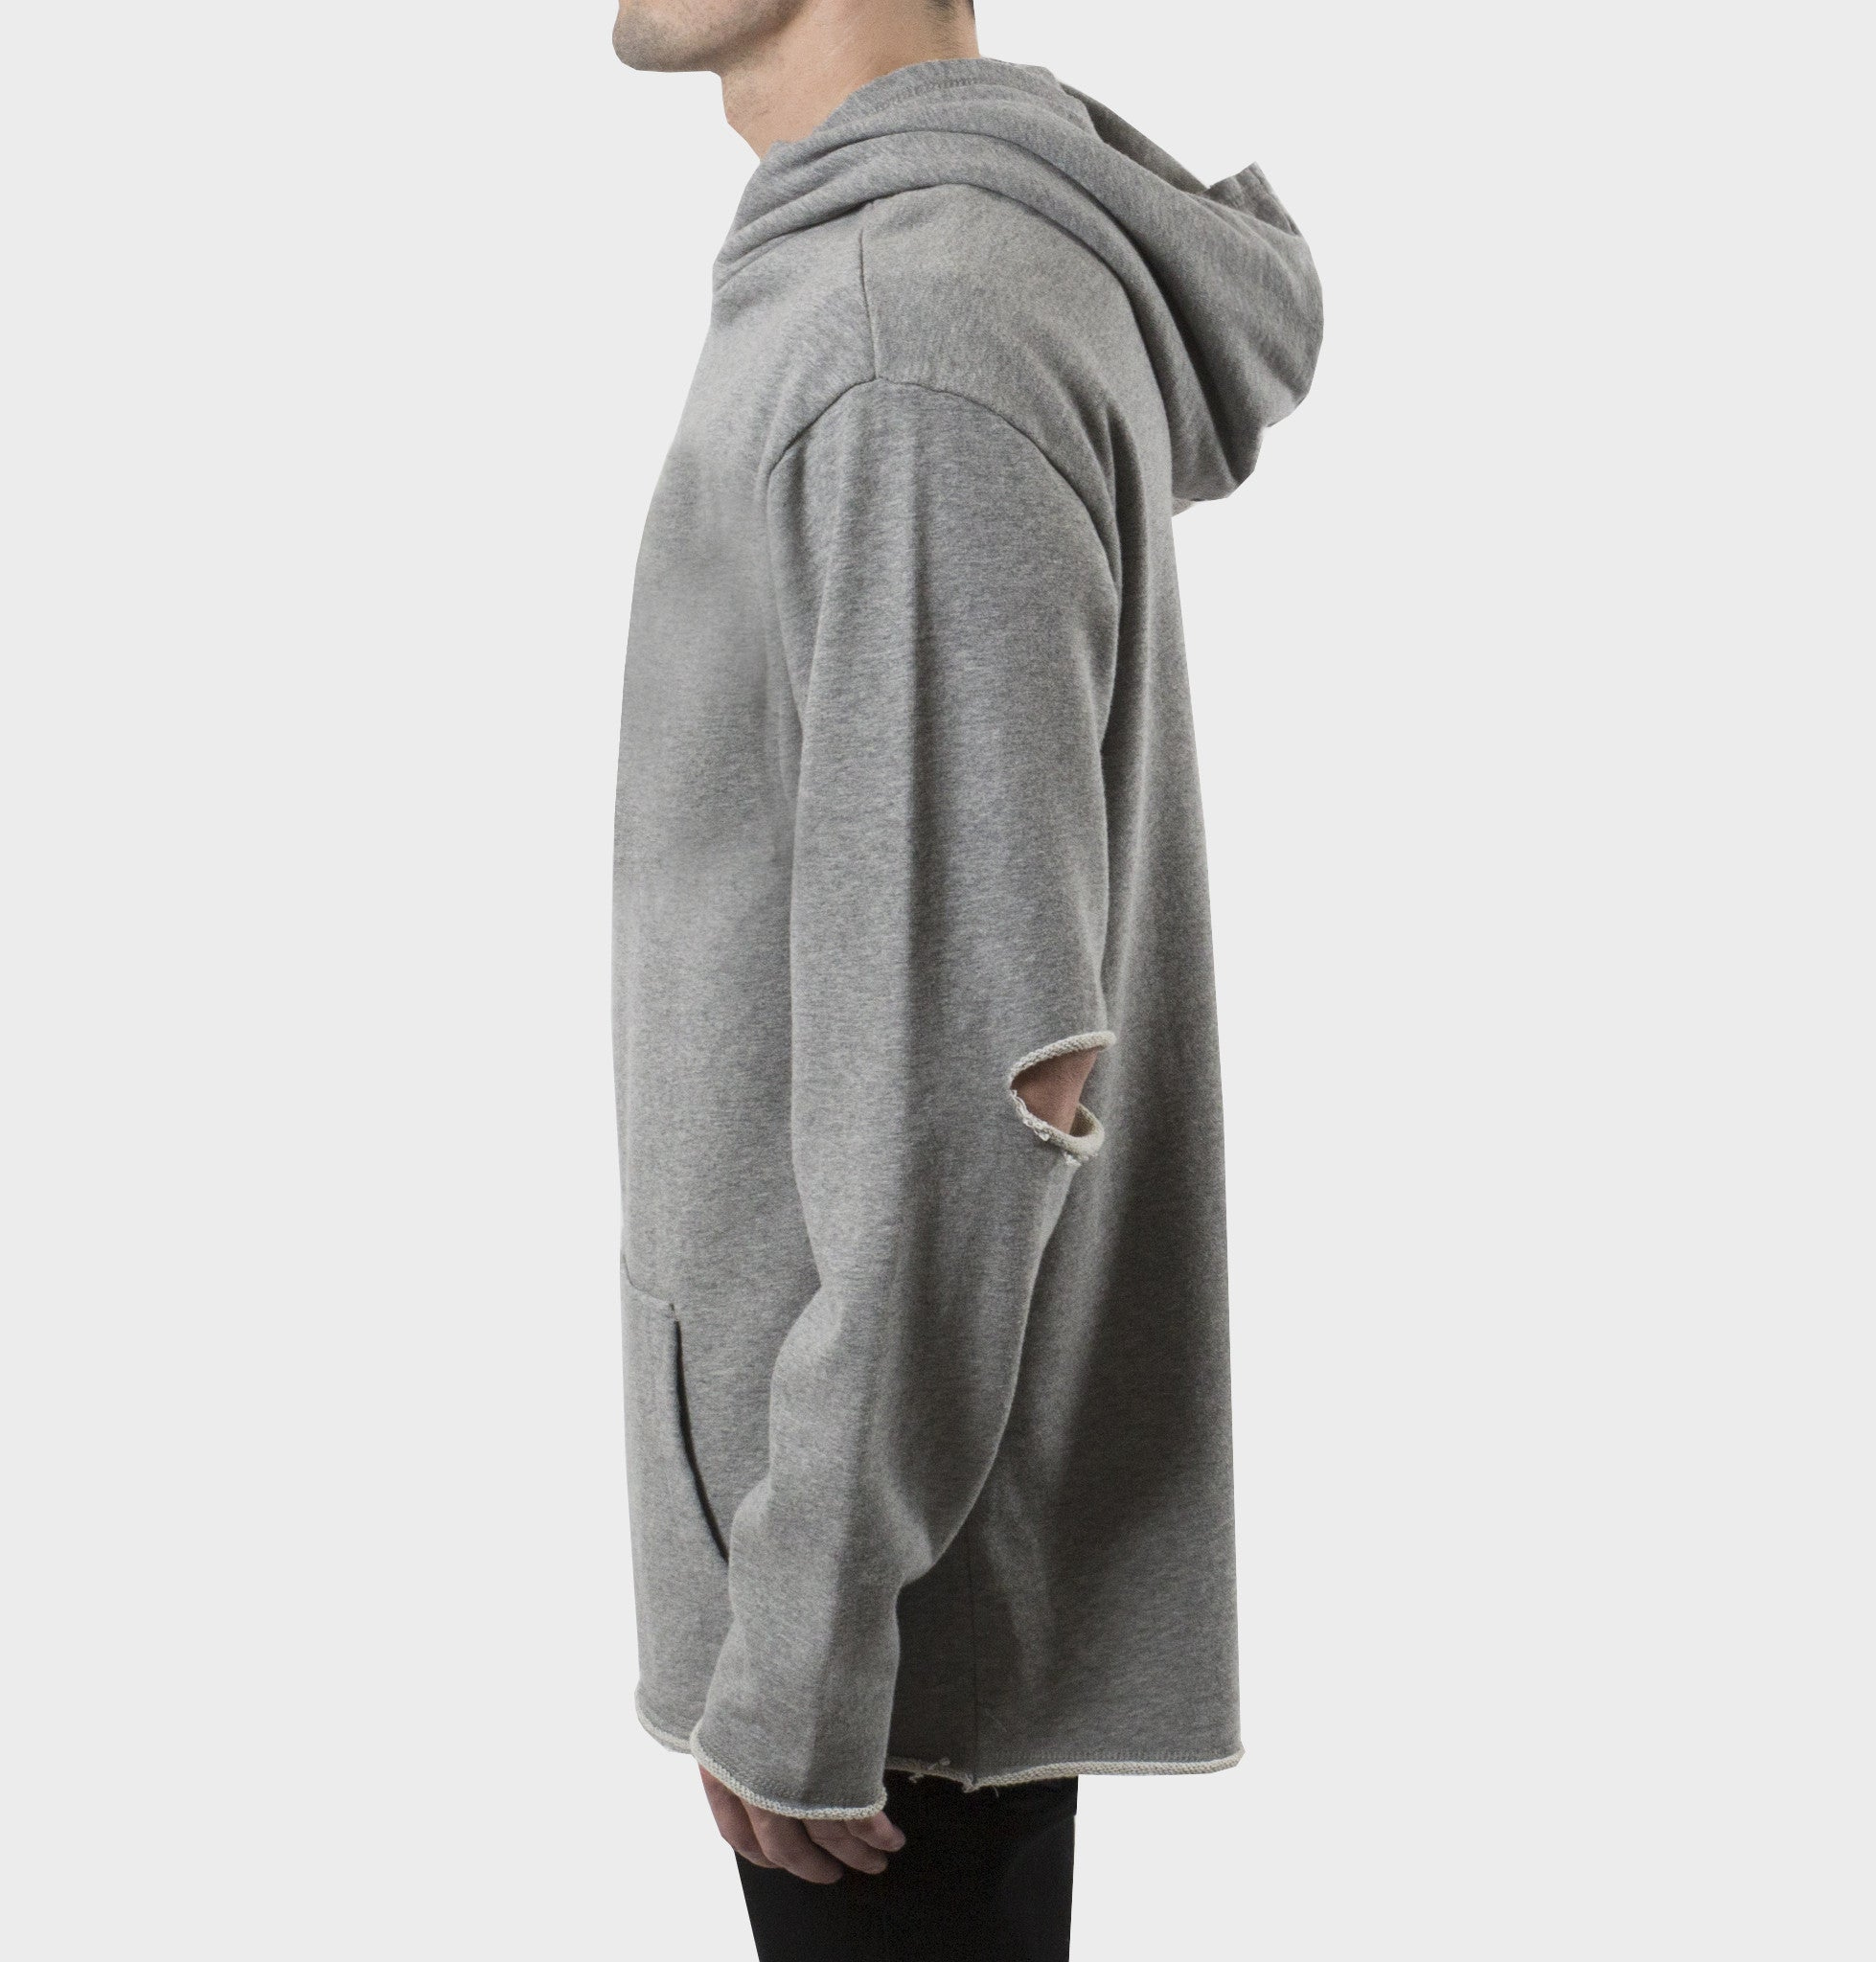 West Oversized Grey Hoodie